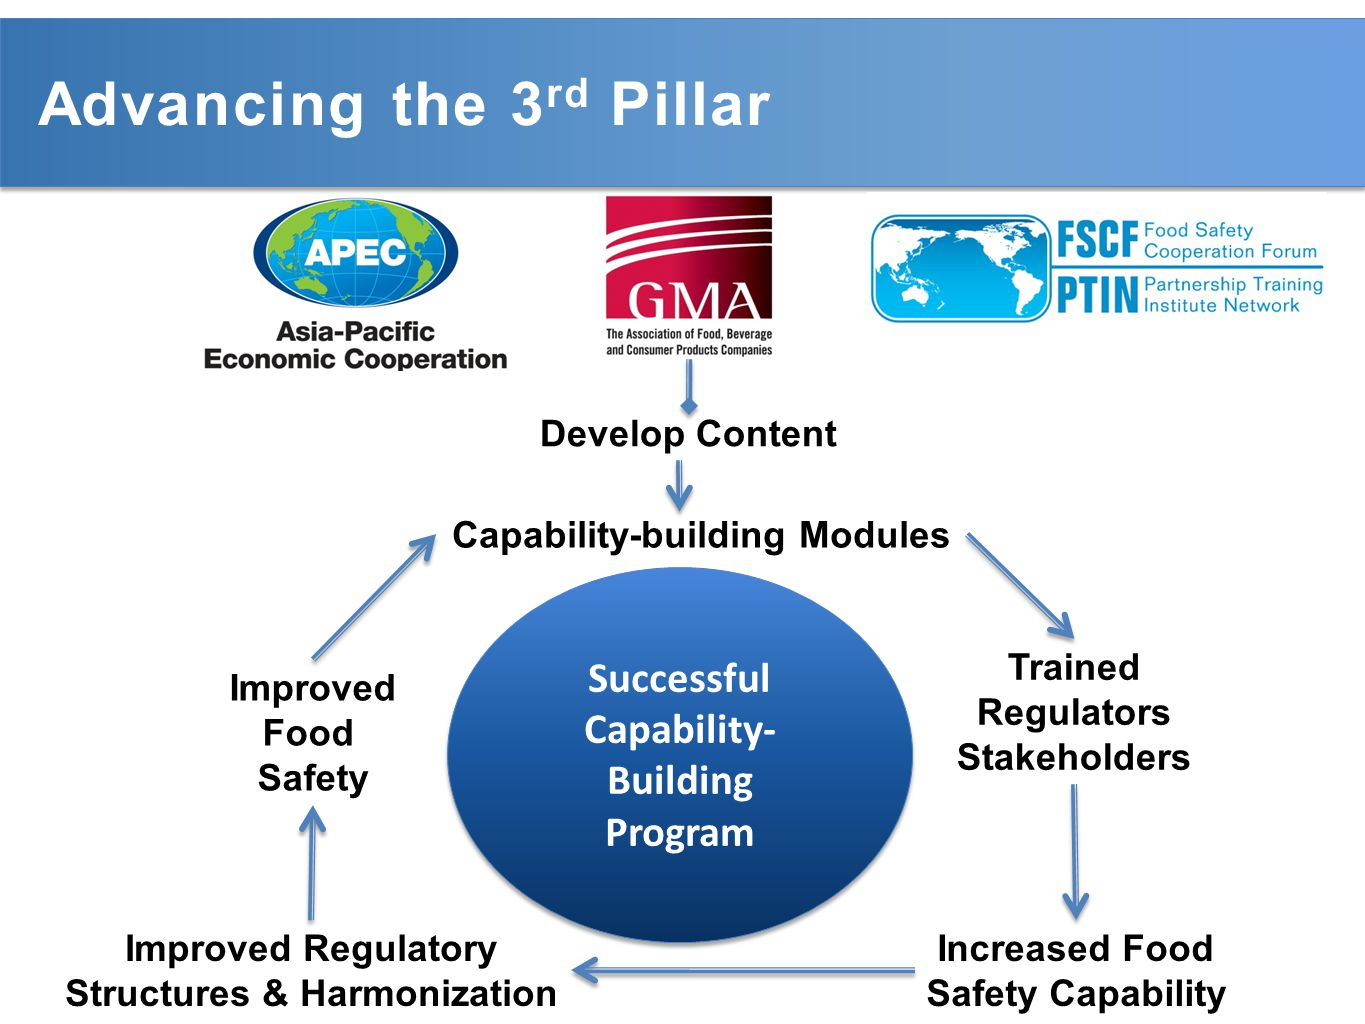 Advancing the 3 rd Pillar Successful Capability- Building Program Successful Capability- Building Program Capability-building Modules Improved Food Safety Improved Regulatory Structures & Harmonization Increased Food Safety Capability Trained Regulators Stakeholders Develop Content